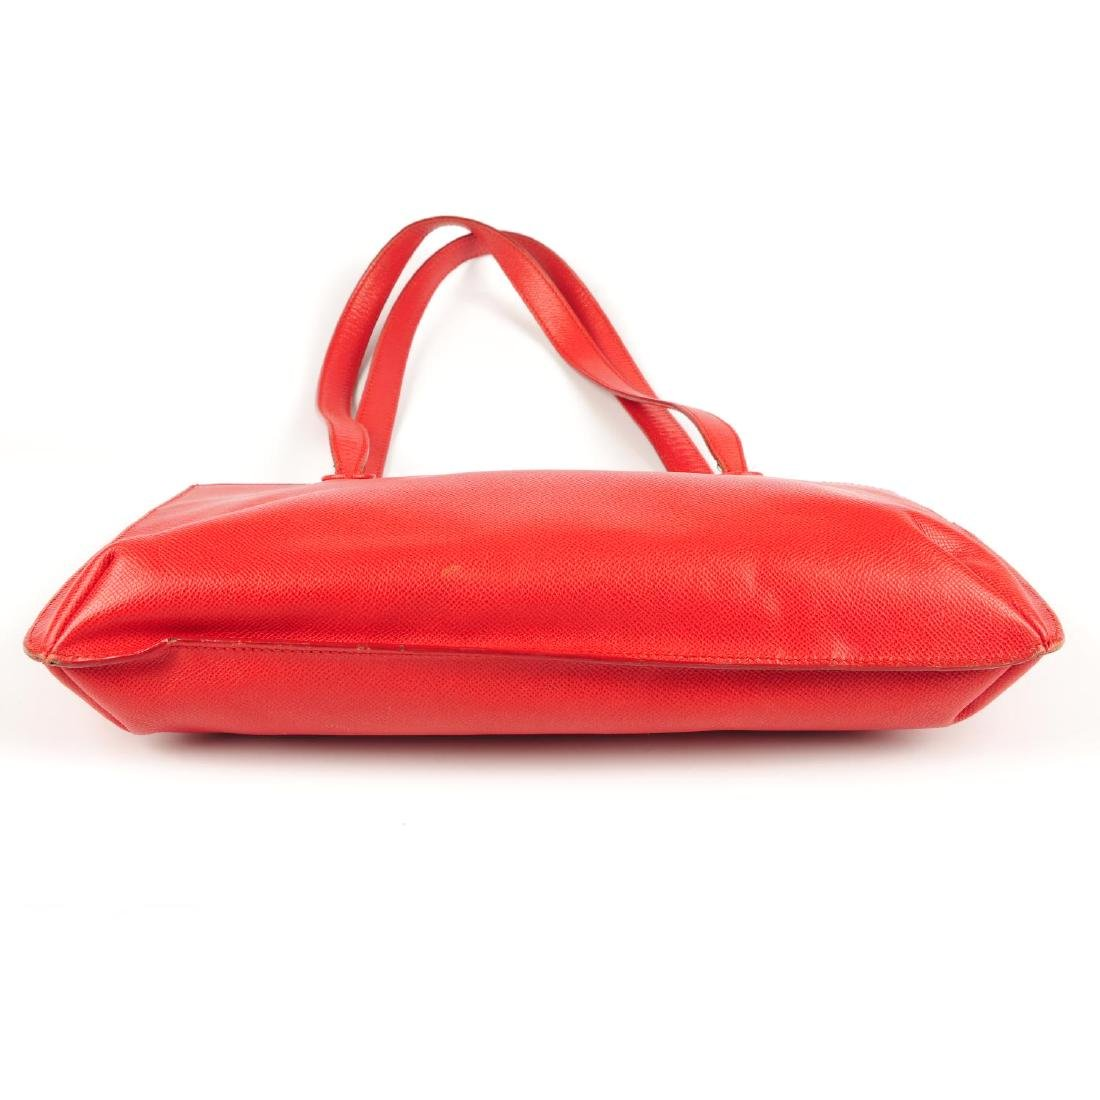 CHANEL - a vintage red leather handbag. Designed with a - 3